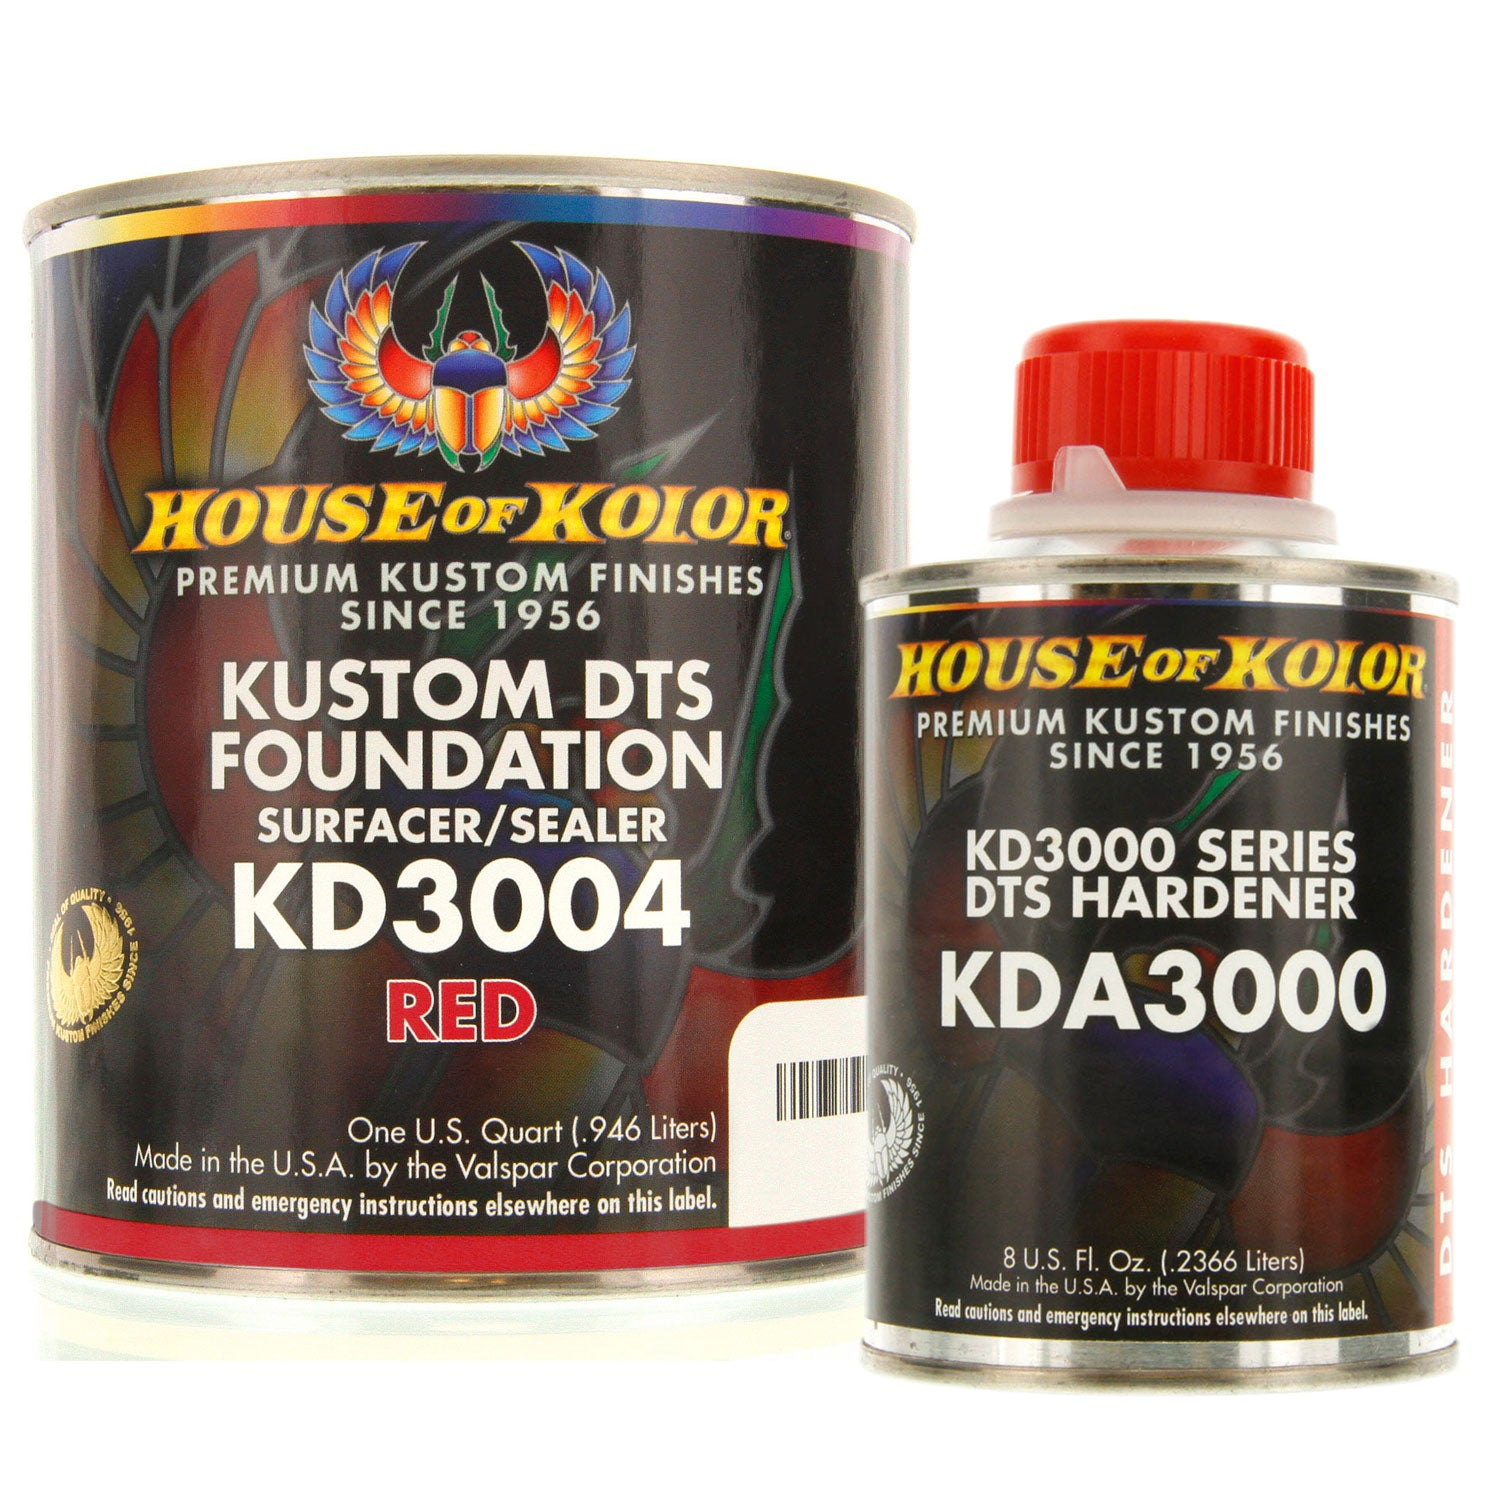 Red Epoxy Primer Kit, 1 Quart with 1/2 Pint Activator House of Kolor